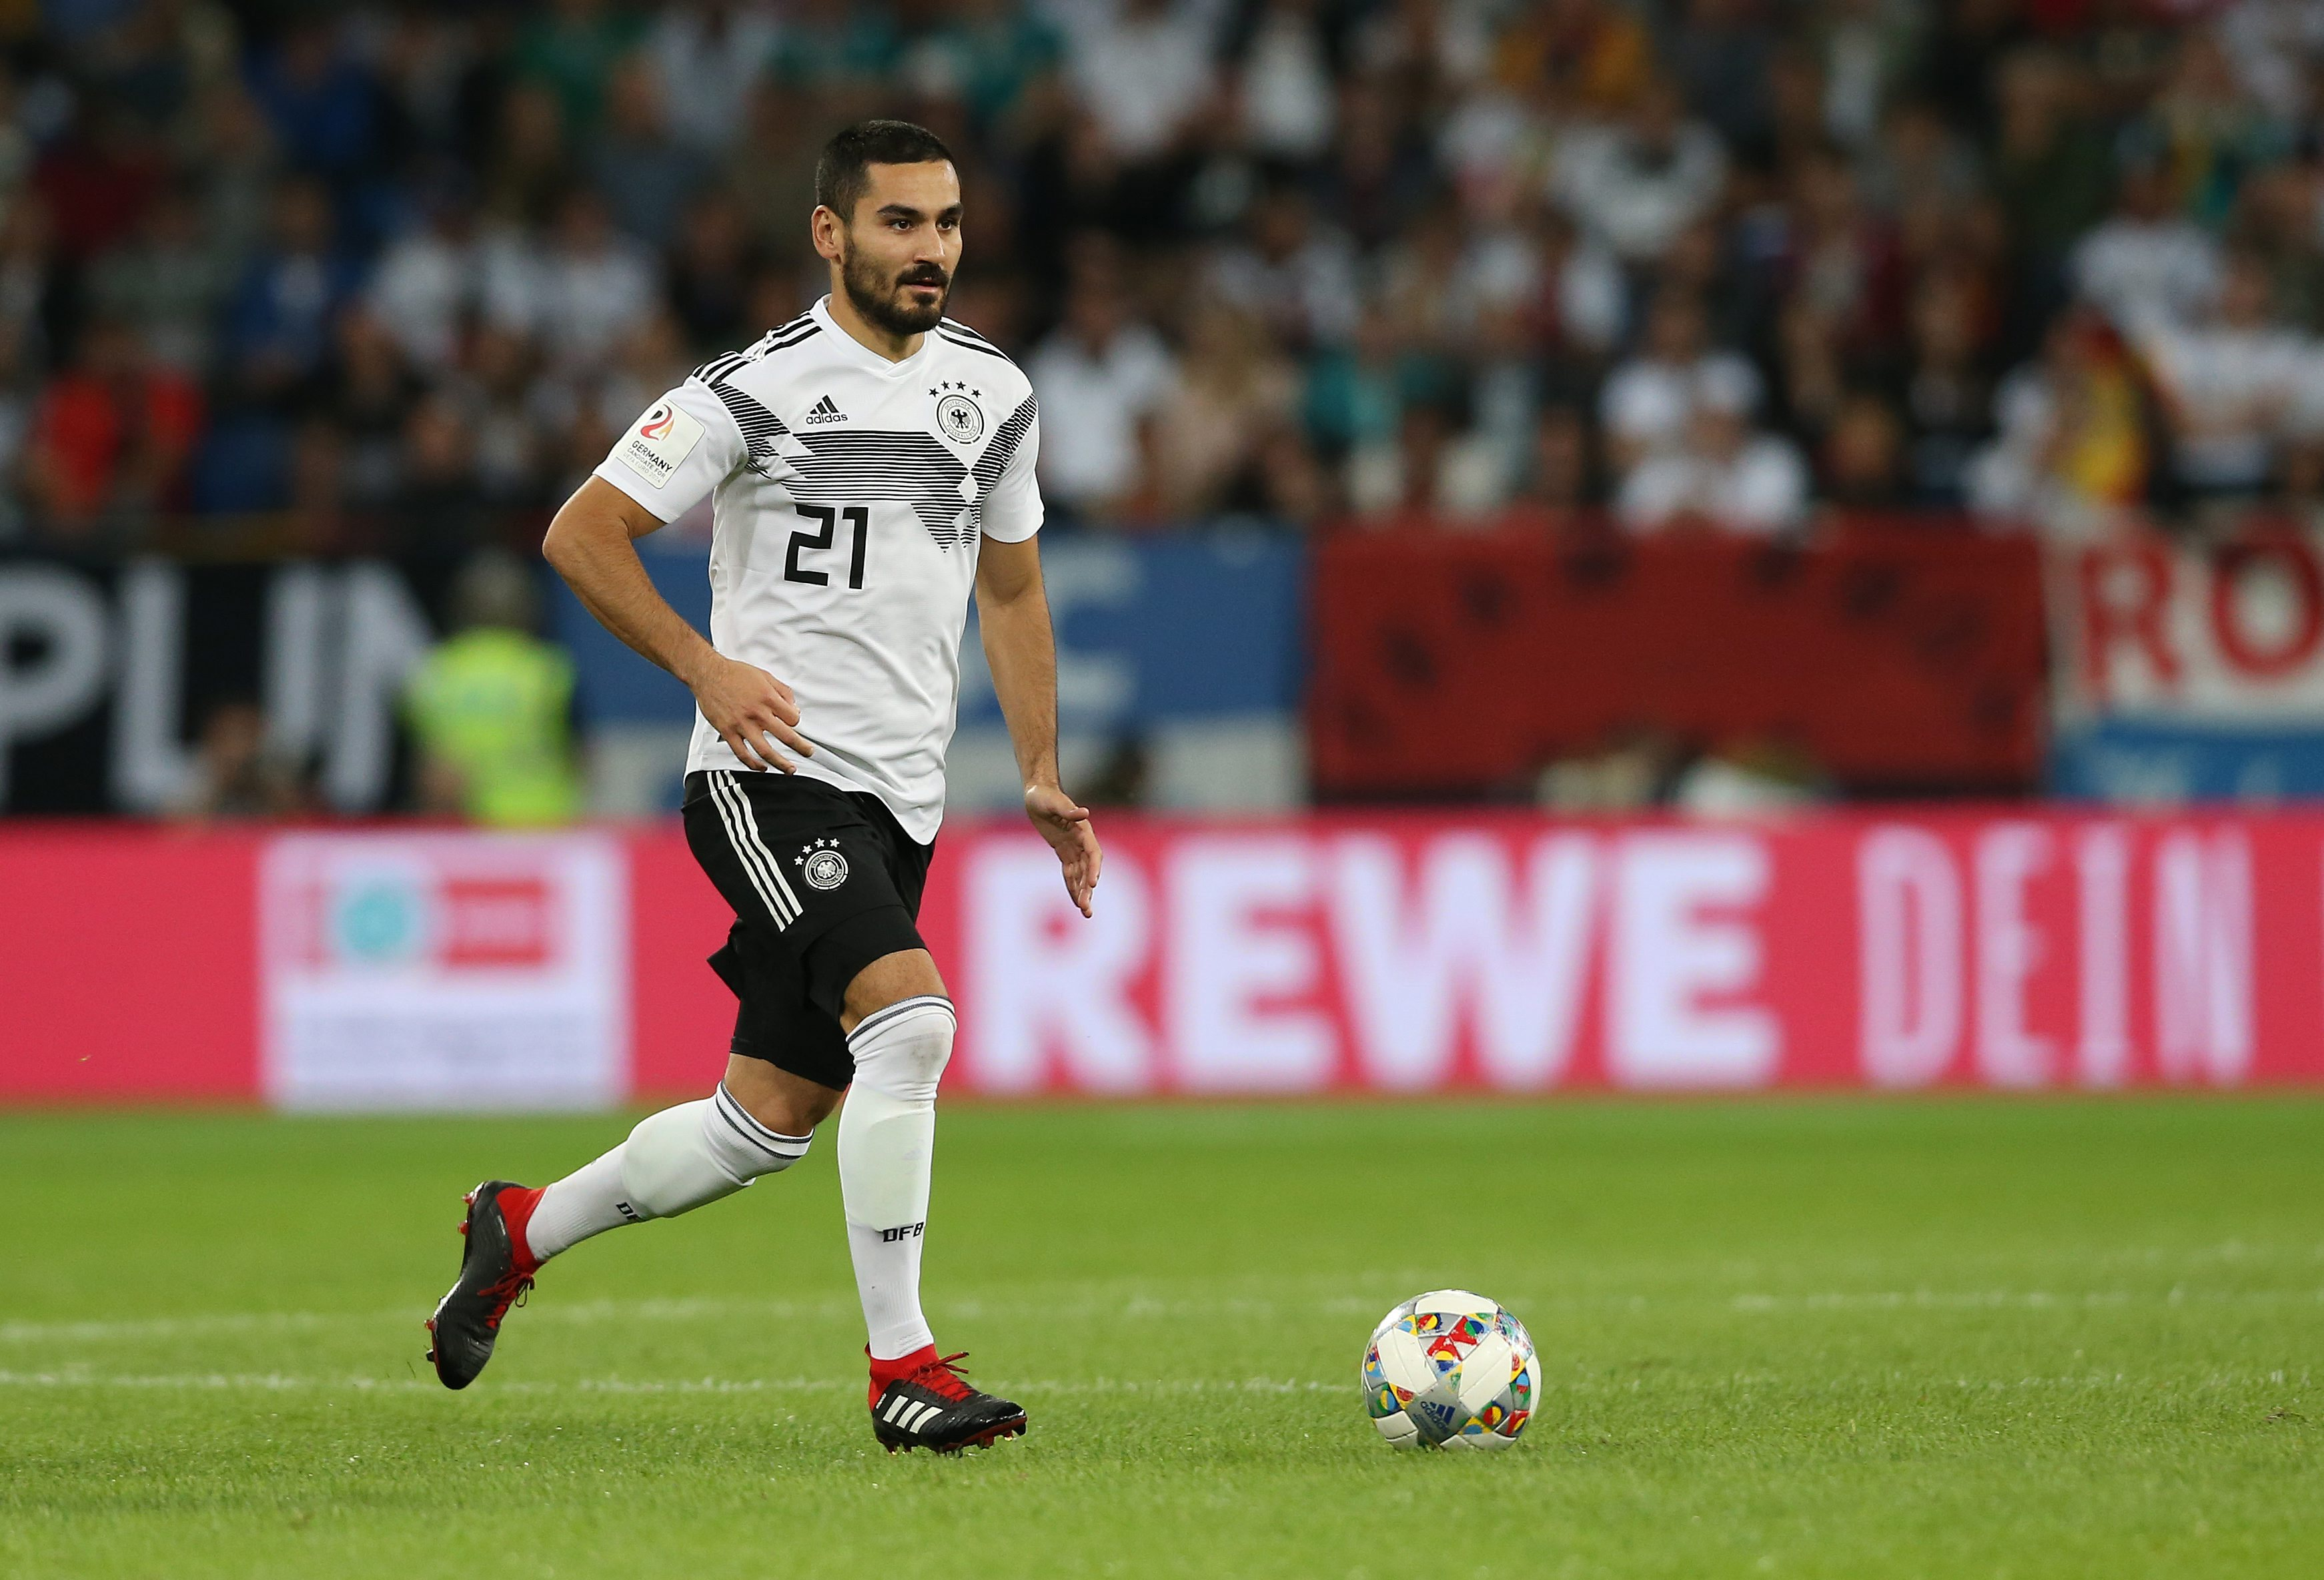 Meulensteen: Fergie wanted Gundogan, Reus at Man Utd before retirement